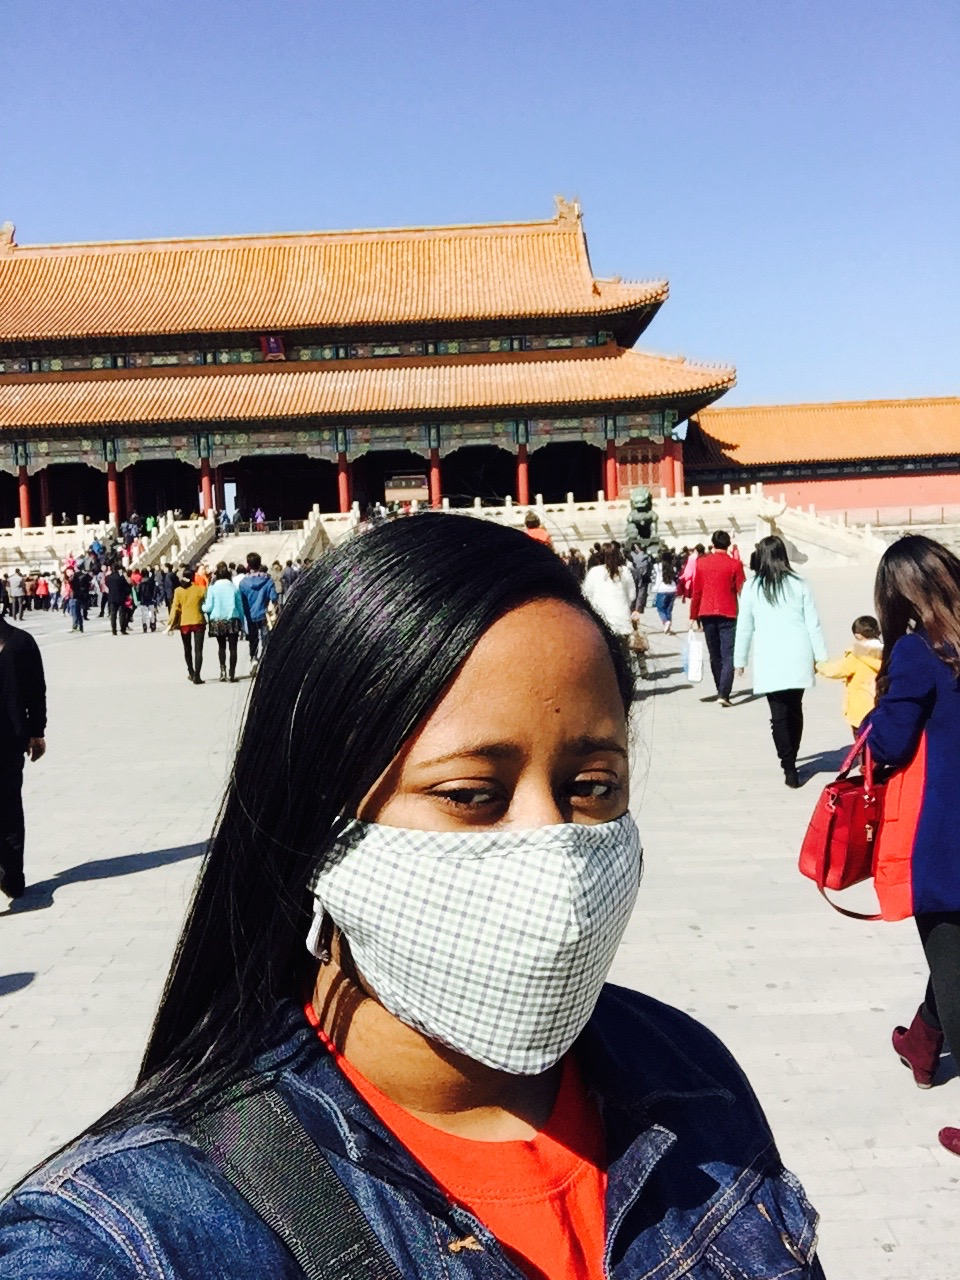 The Forbidden City. Beijing,China